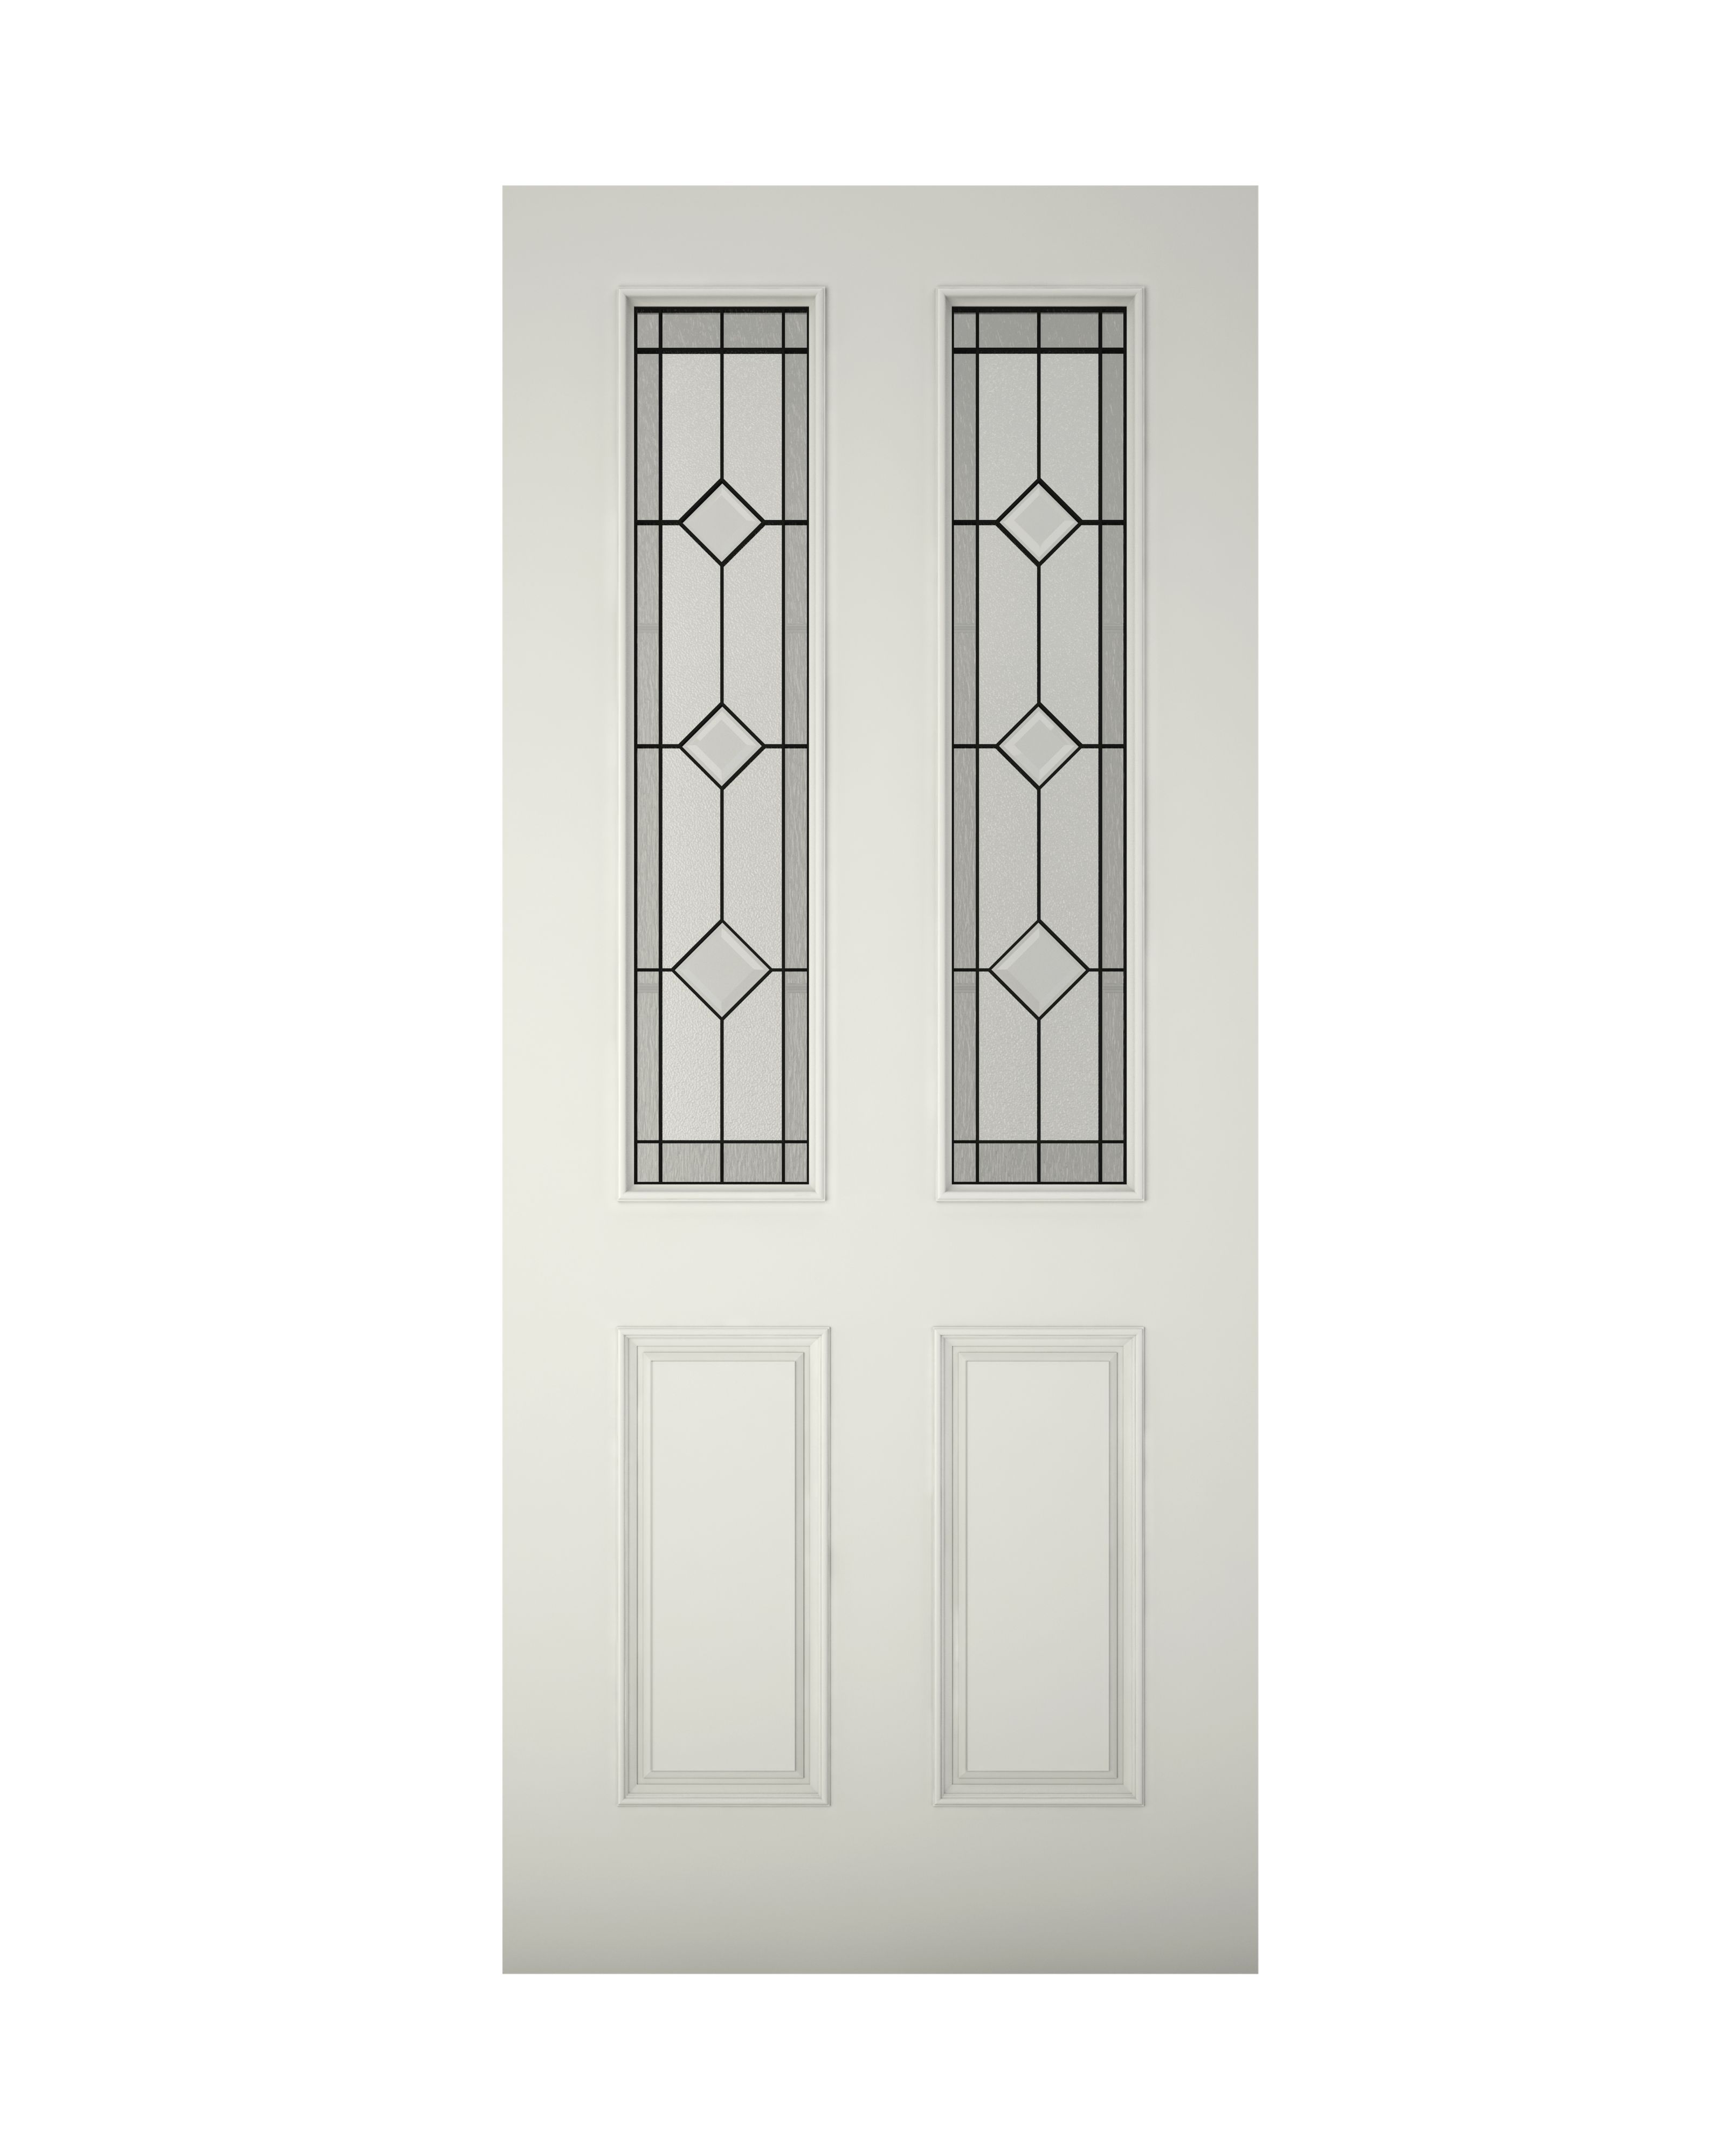 4 Panel Primed Glazed Front Door u0026 Frame with Letter Plate - Bu0026Q for all your home and garden supplies and advice on all the latest DIY trends  sc 1 st  Pinterest & Paintable - 4 Panel Primed Timber Glazed External Front Door (H ...